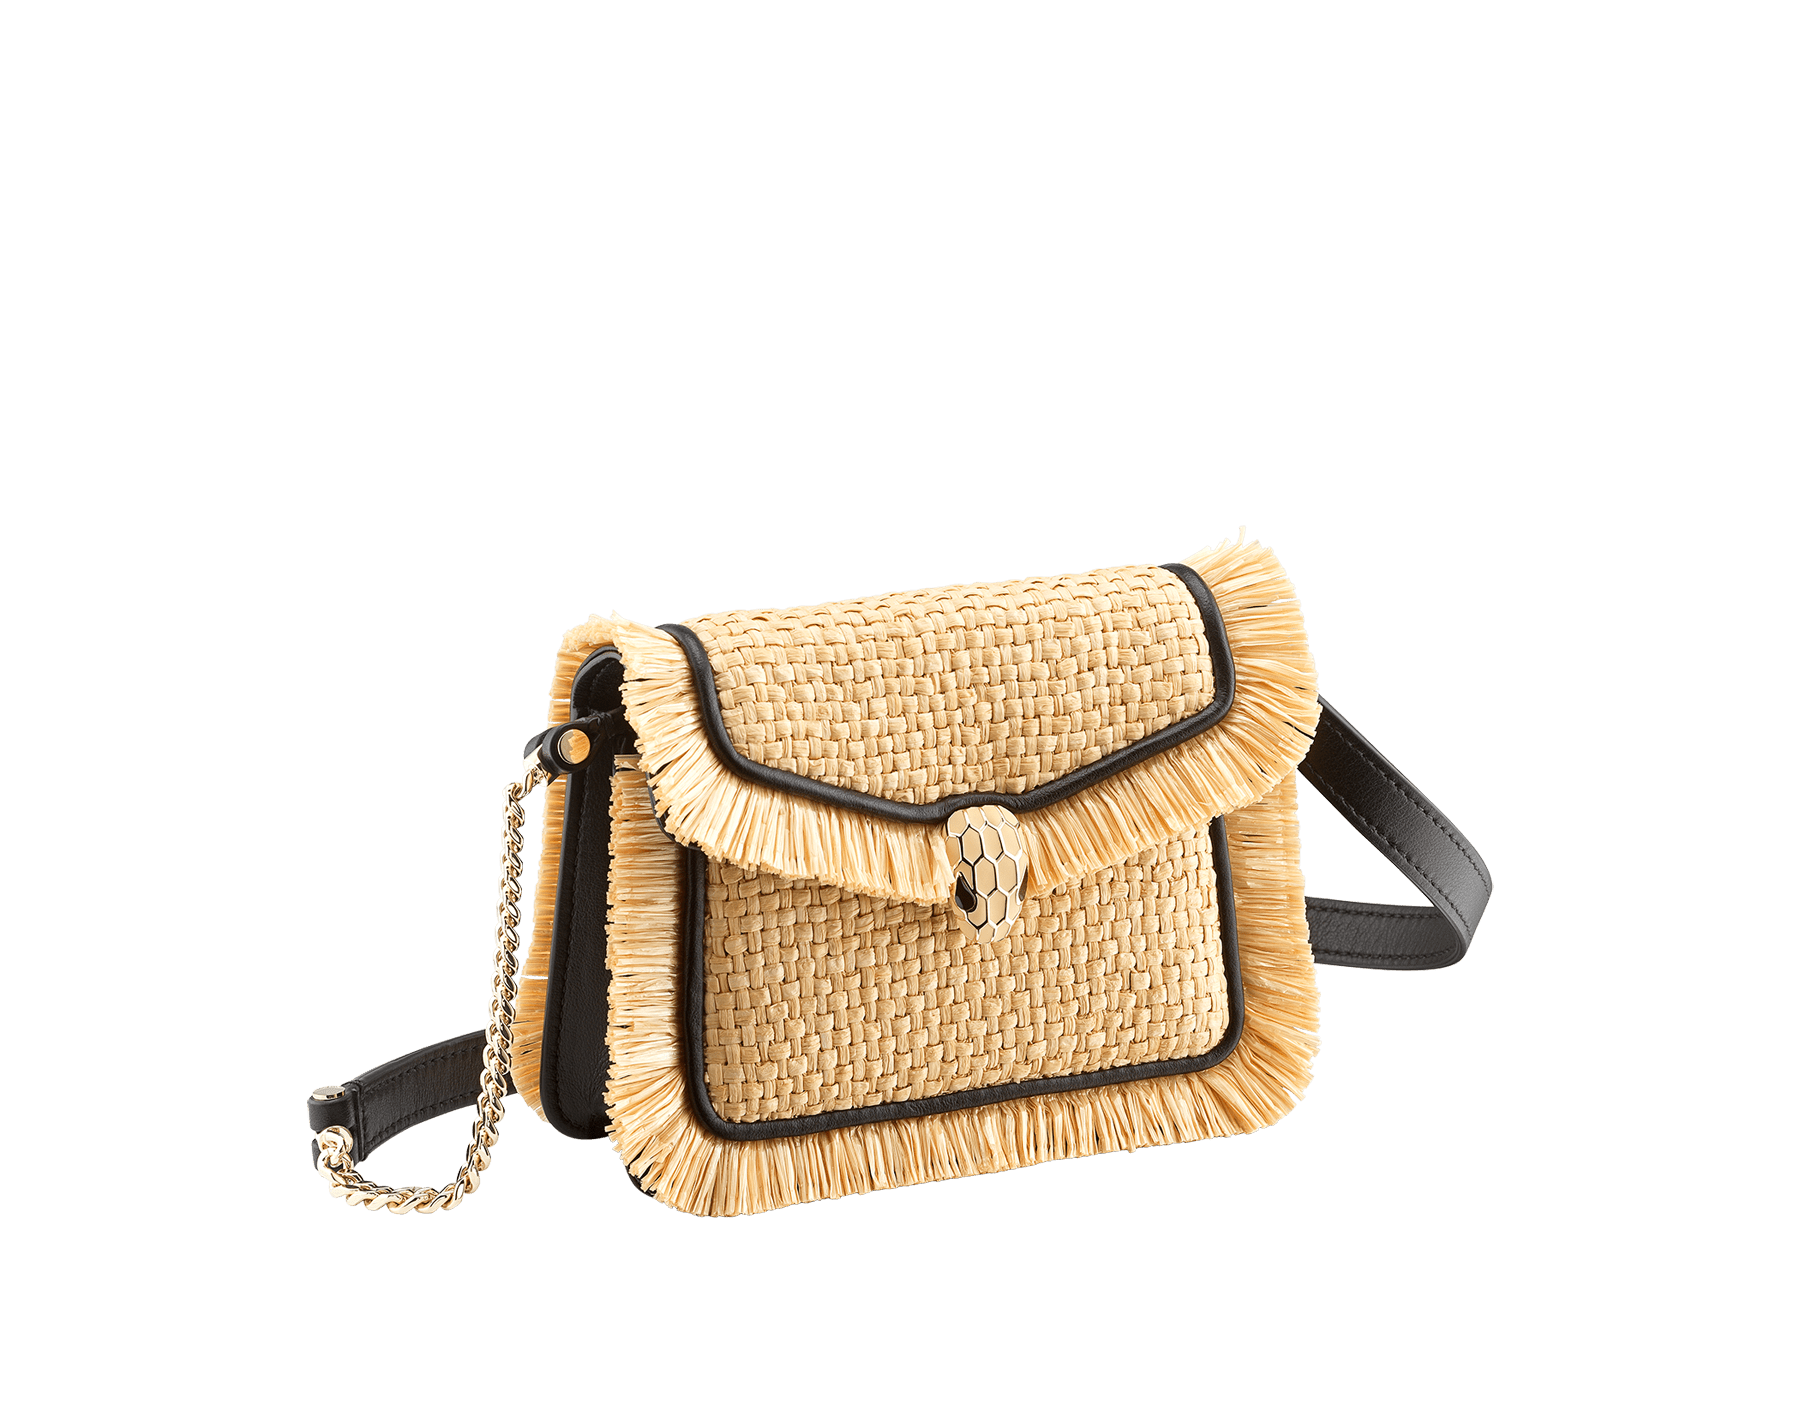 """Serpenti Forever"" mini bag in beige raffia and black calfskin frames enhanced with beige raffia fringes, and black nappa leather internal lining. Light gold-plated brass snakehead closure enhanced with full matte Natural beige enamel and black onyx eyes. 290968 image 1"